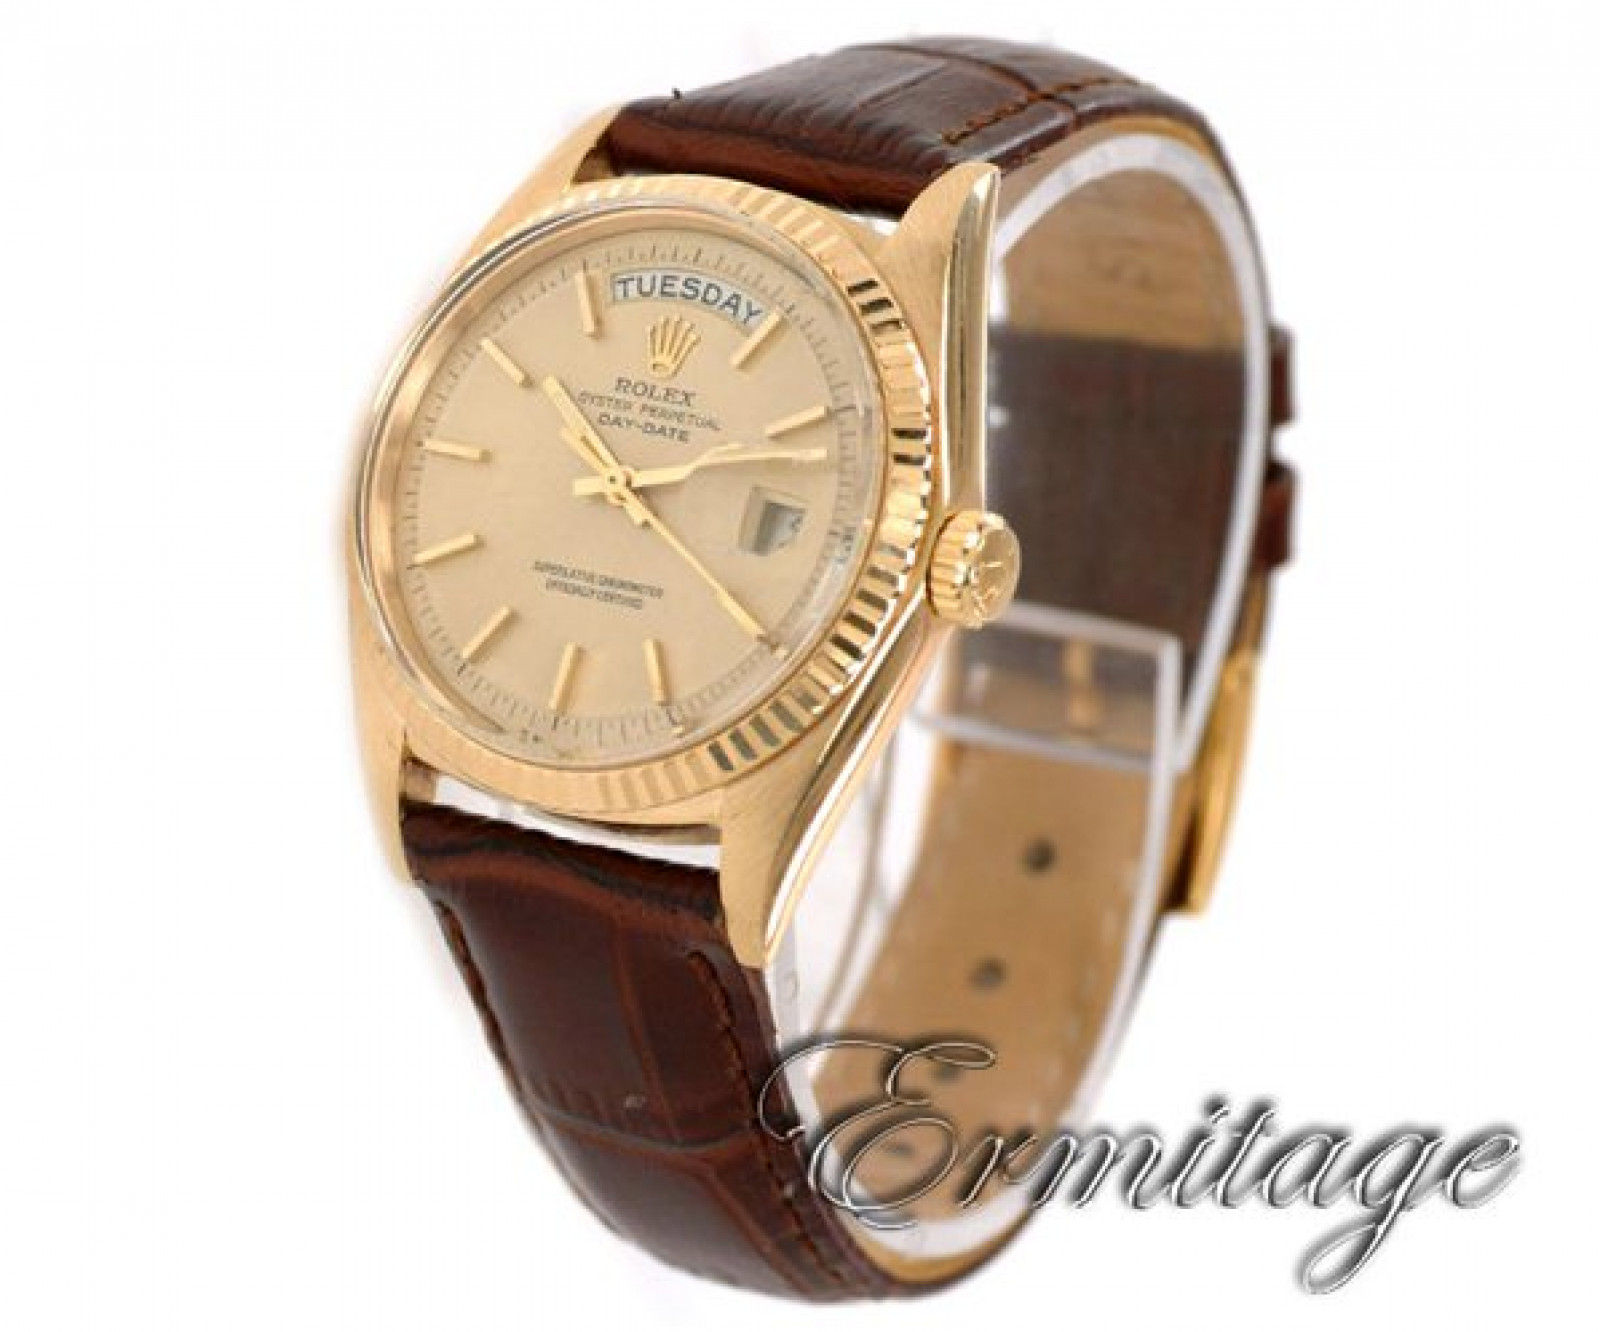 Vintage Rolex Day-Date 1803 Gold Year 1963 with Champagne Dial 1963